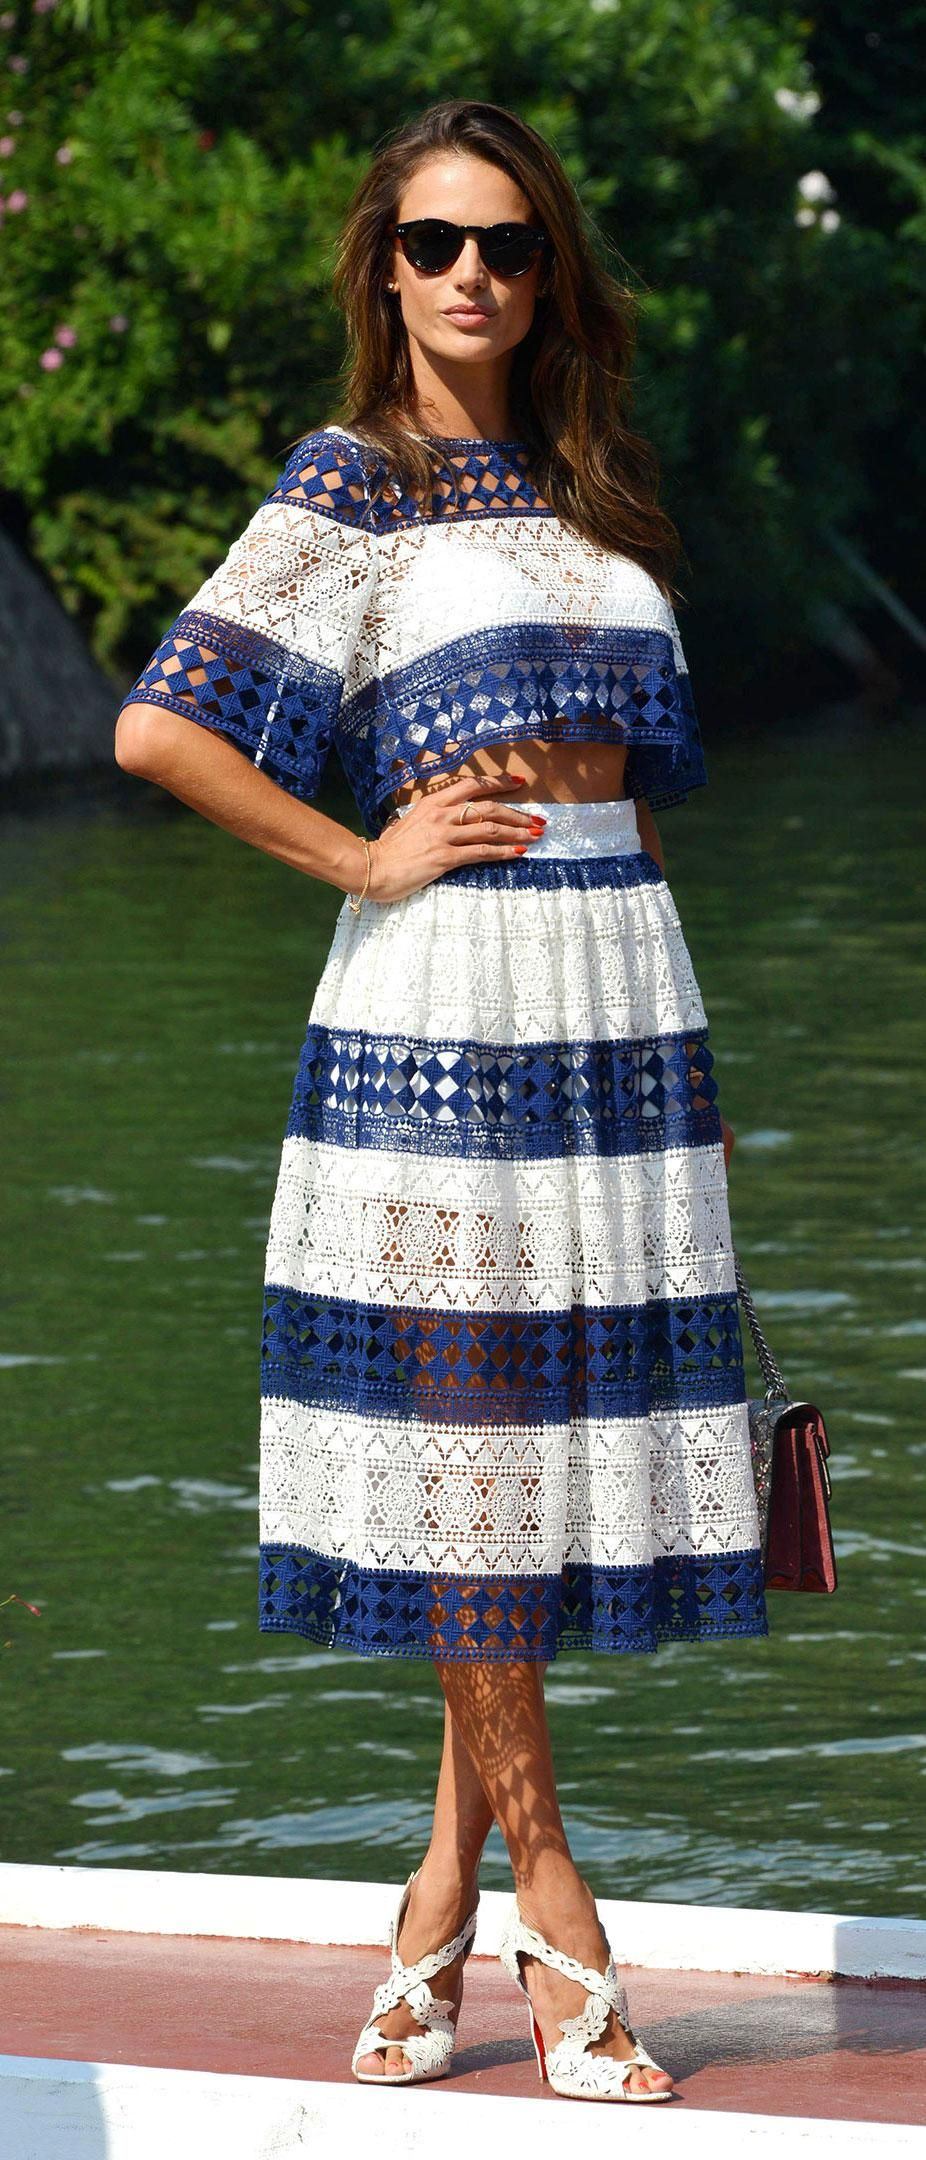 Alessandra Ambrosio did casual blue and white stripes when arriving in Venice - click for more film festival outfits we love